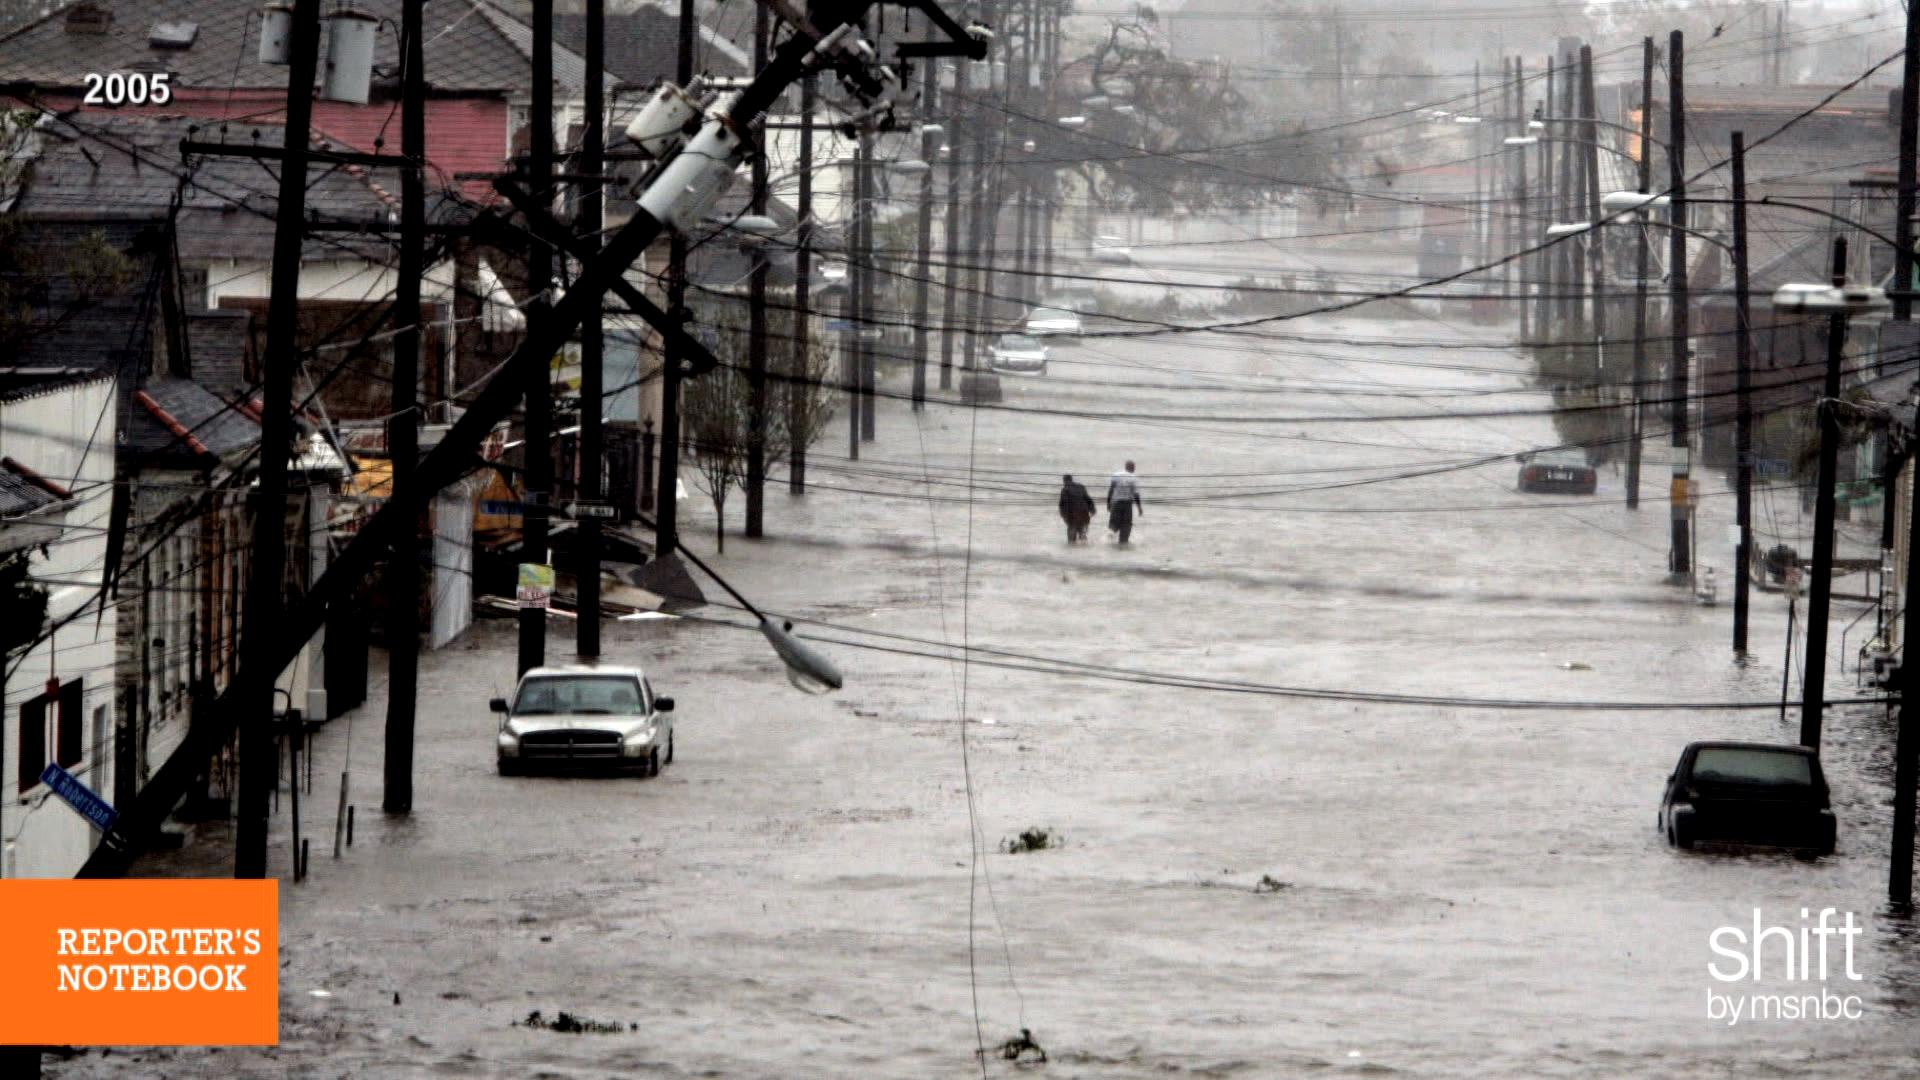 Journalists on covering Hurricane Katrina